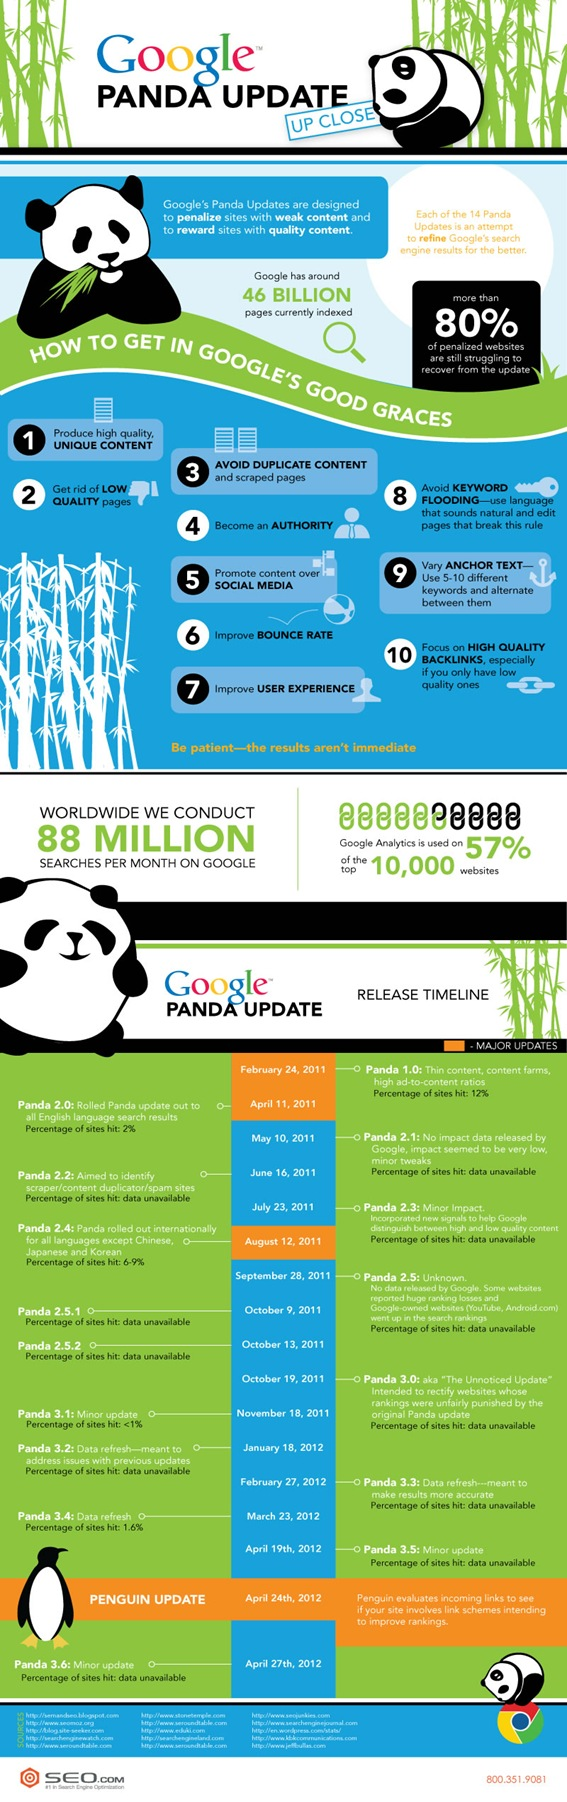 Google Panda Update Timeline & Tips Infographic